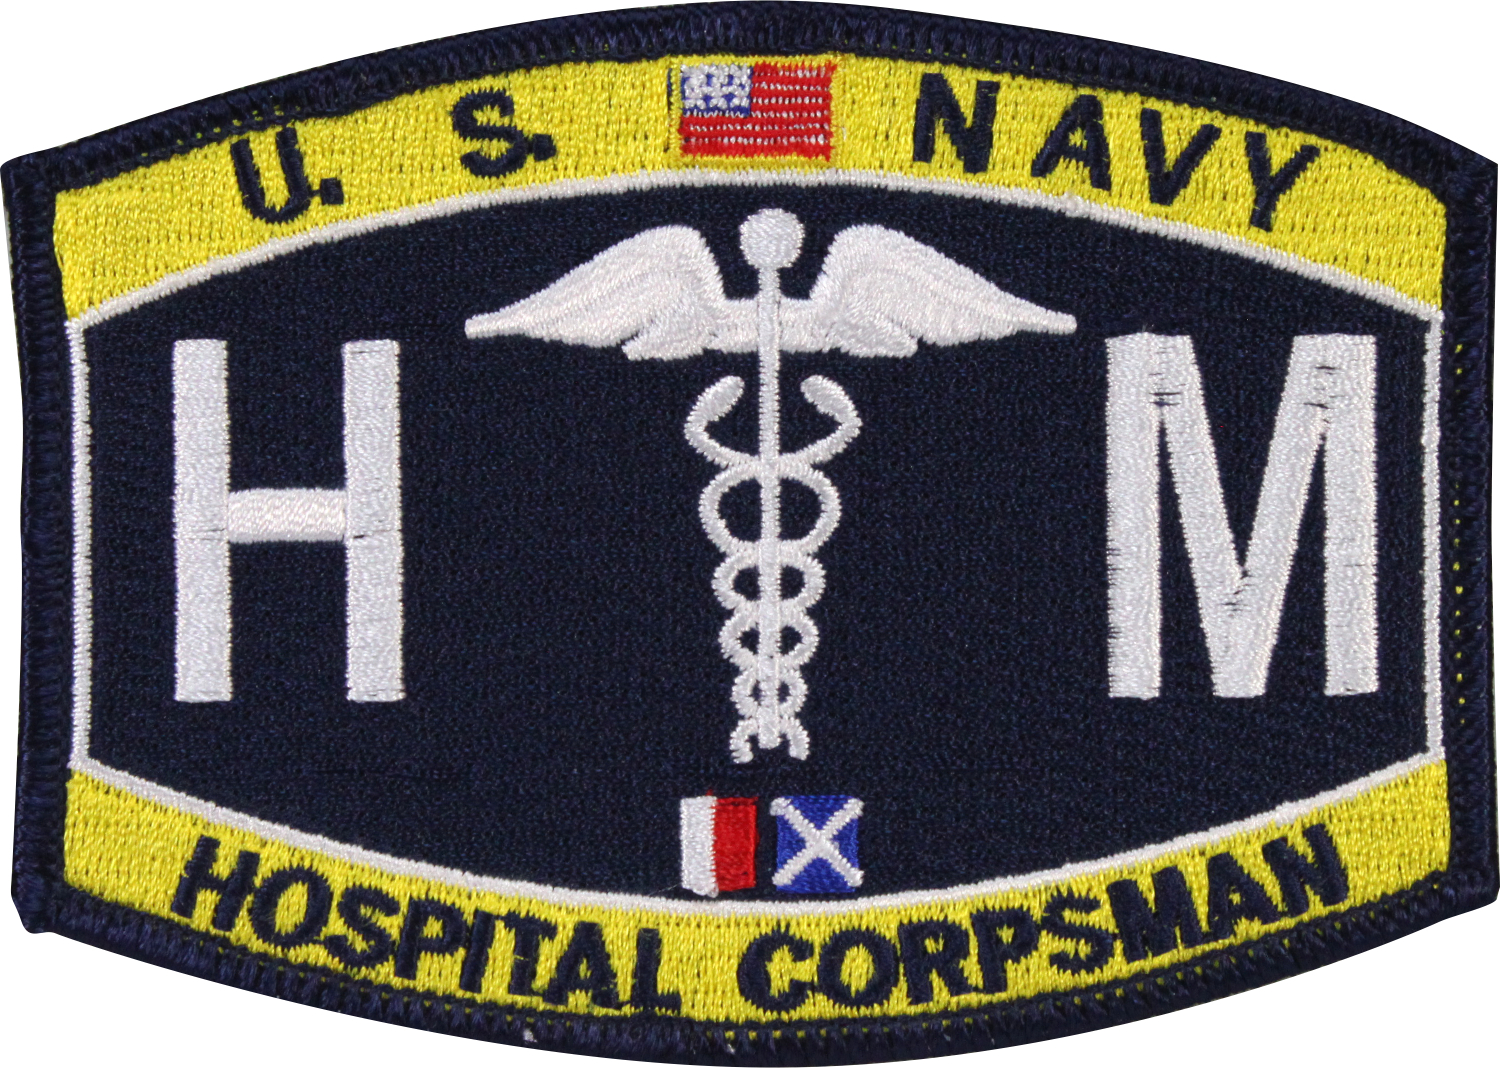 Navy hospital corpsman patch us navy hospital corpsman patch biocorpaavc Gallery